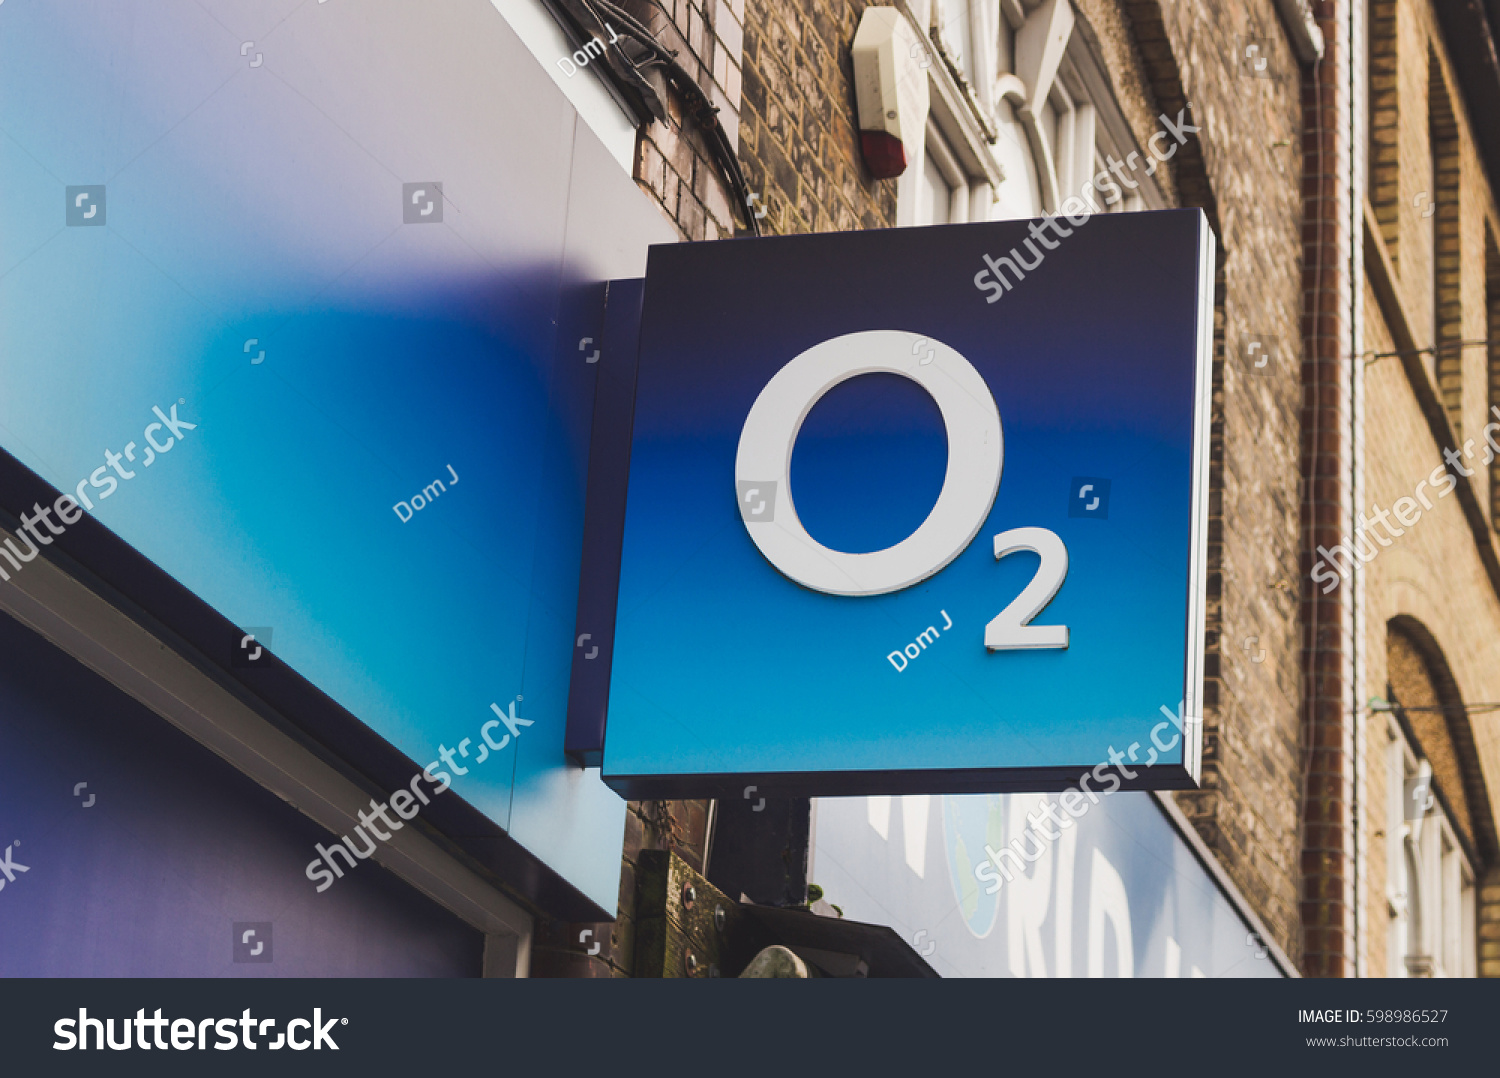 LONDON, ENGLAND - MARCH 1st, 2017: O2 business logo, sign, Harrow, London, UK.